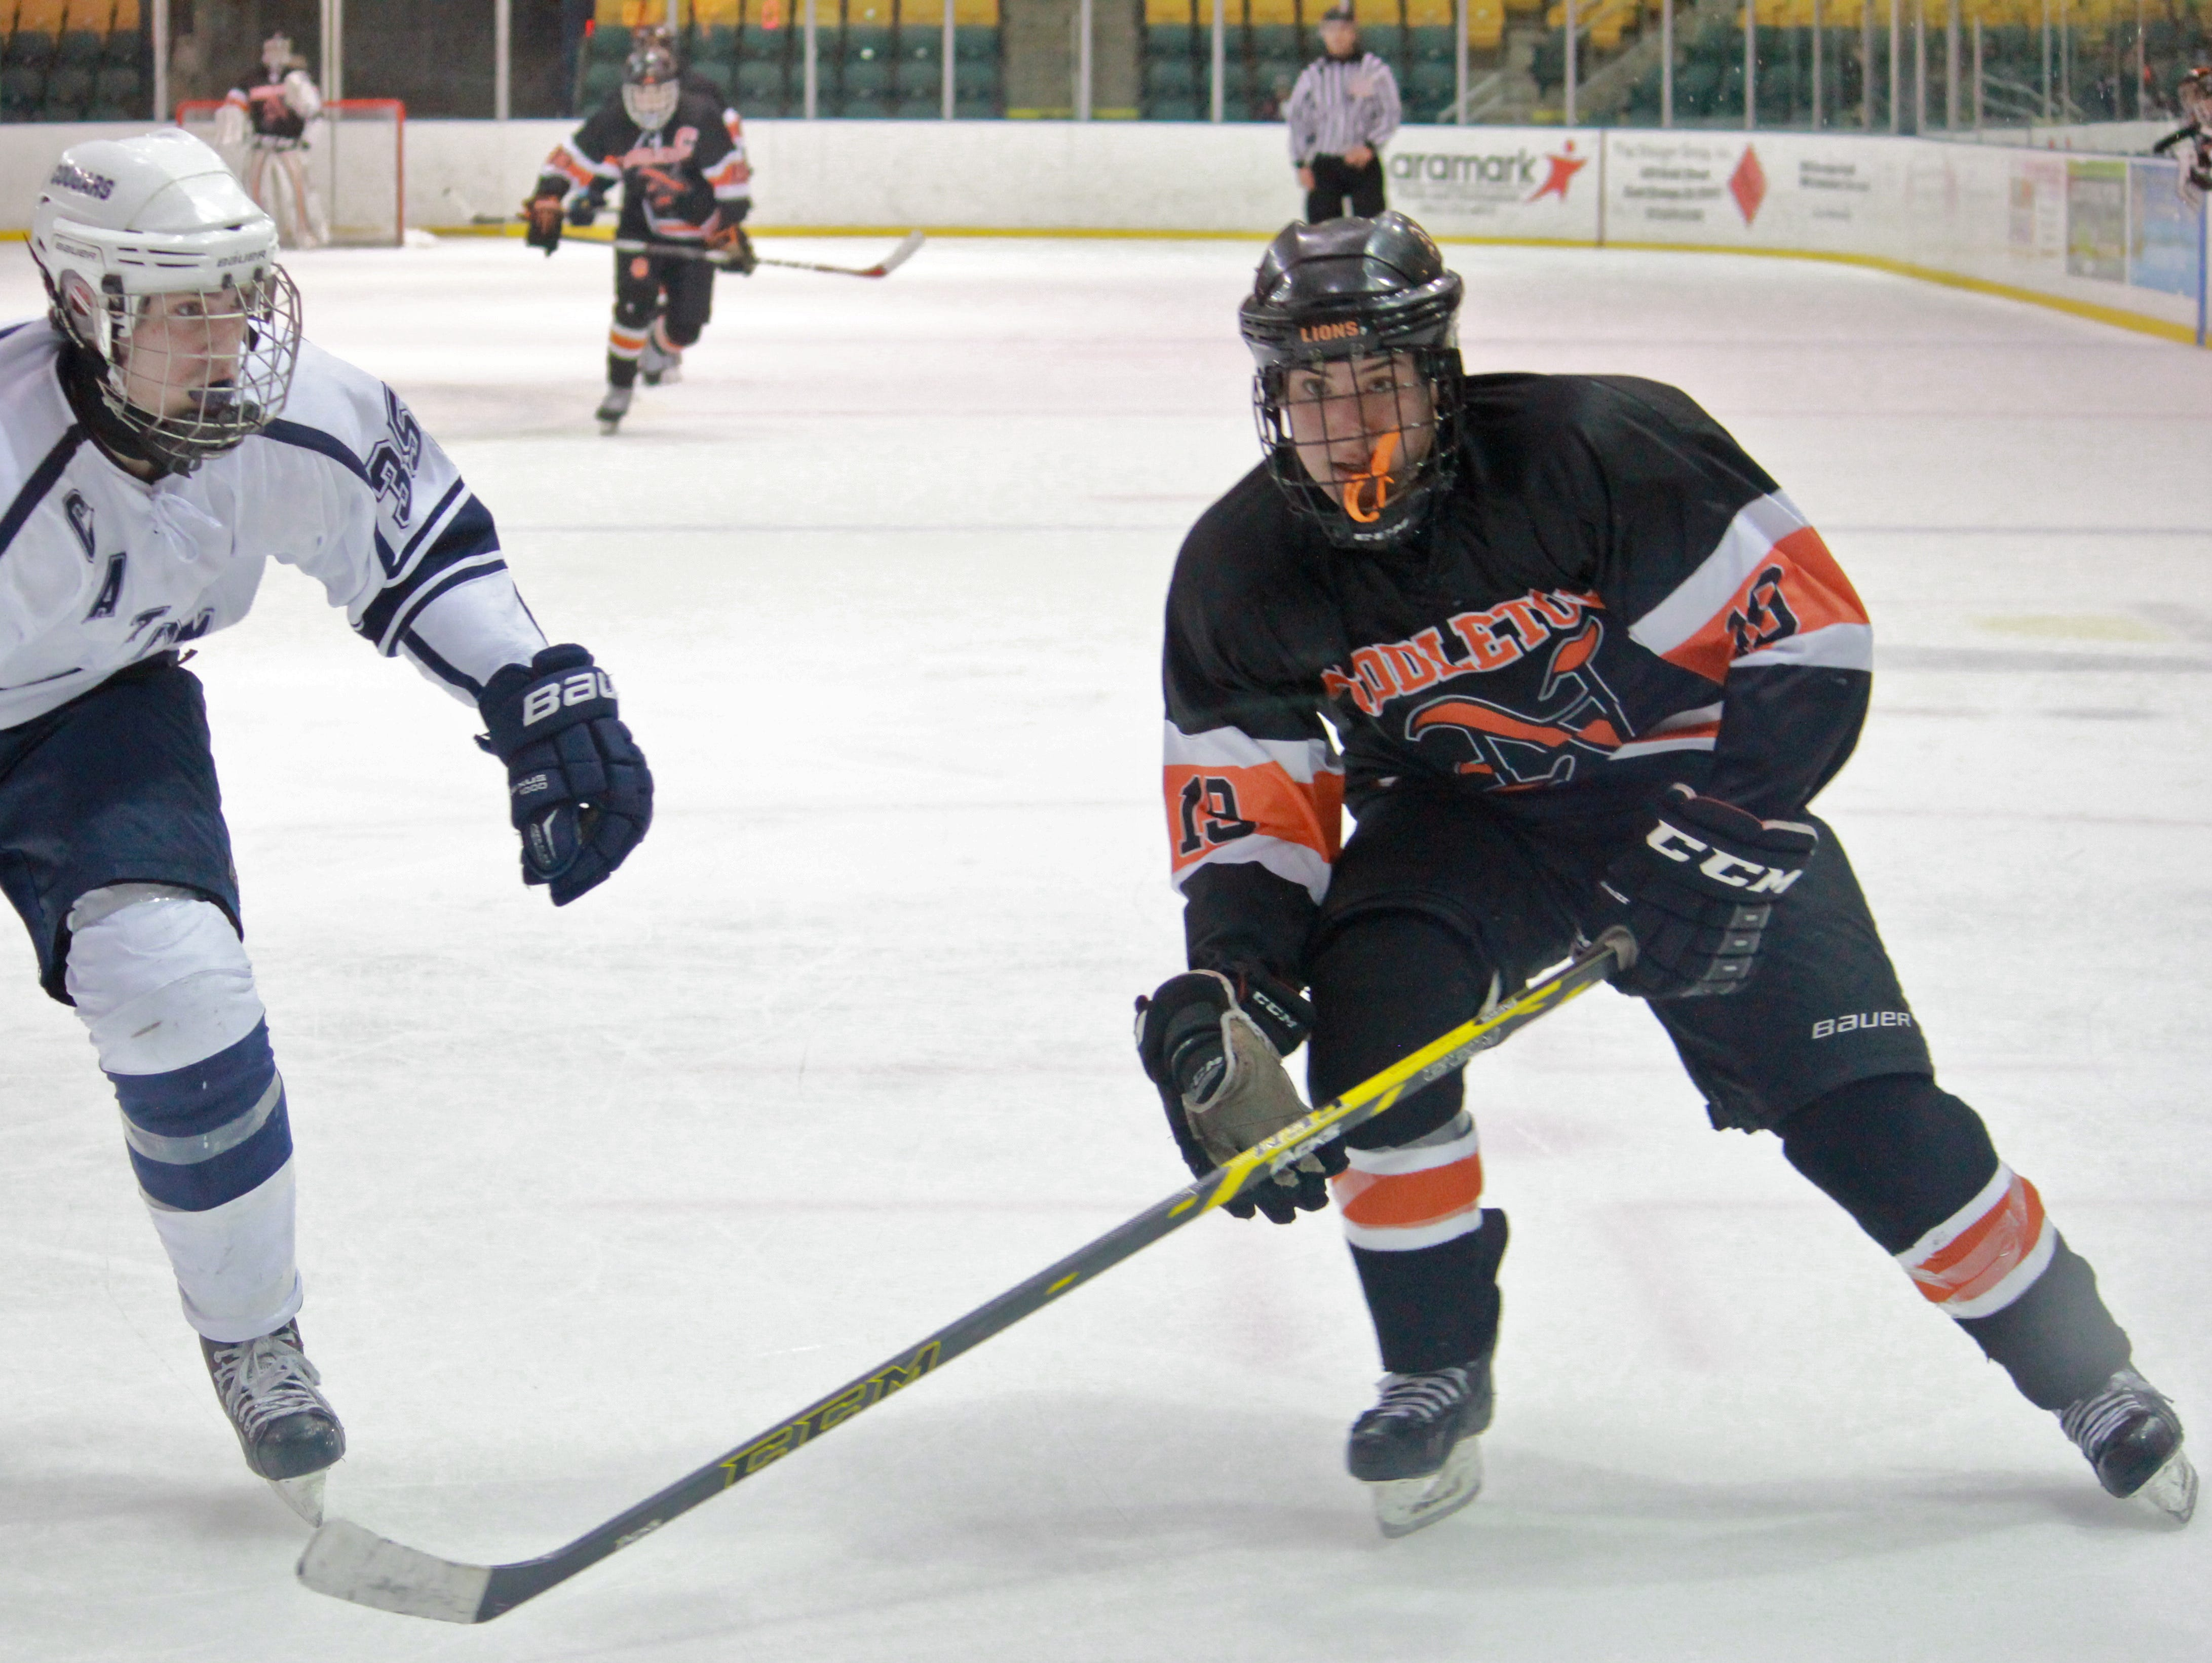 Kevin Felice (19 - right) seen skating in an NJSIAA Tournament game against Chatham led the Lions past Marlboro on Saturday.